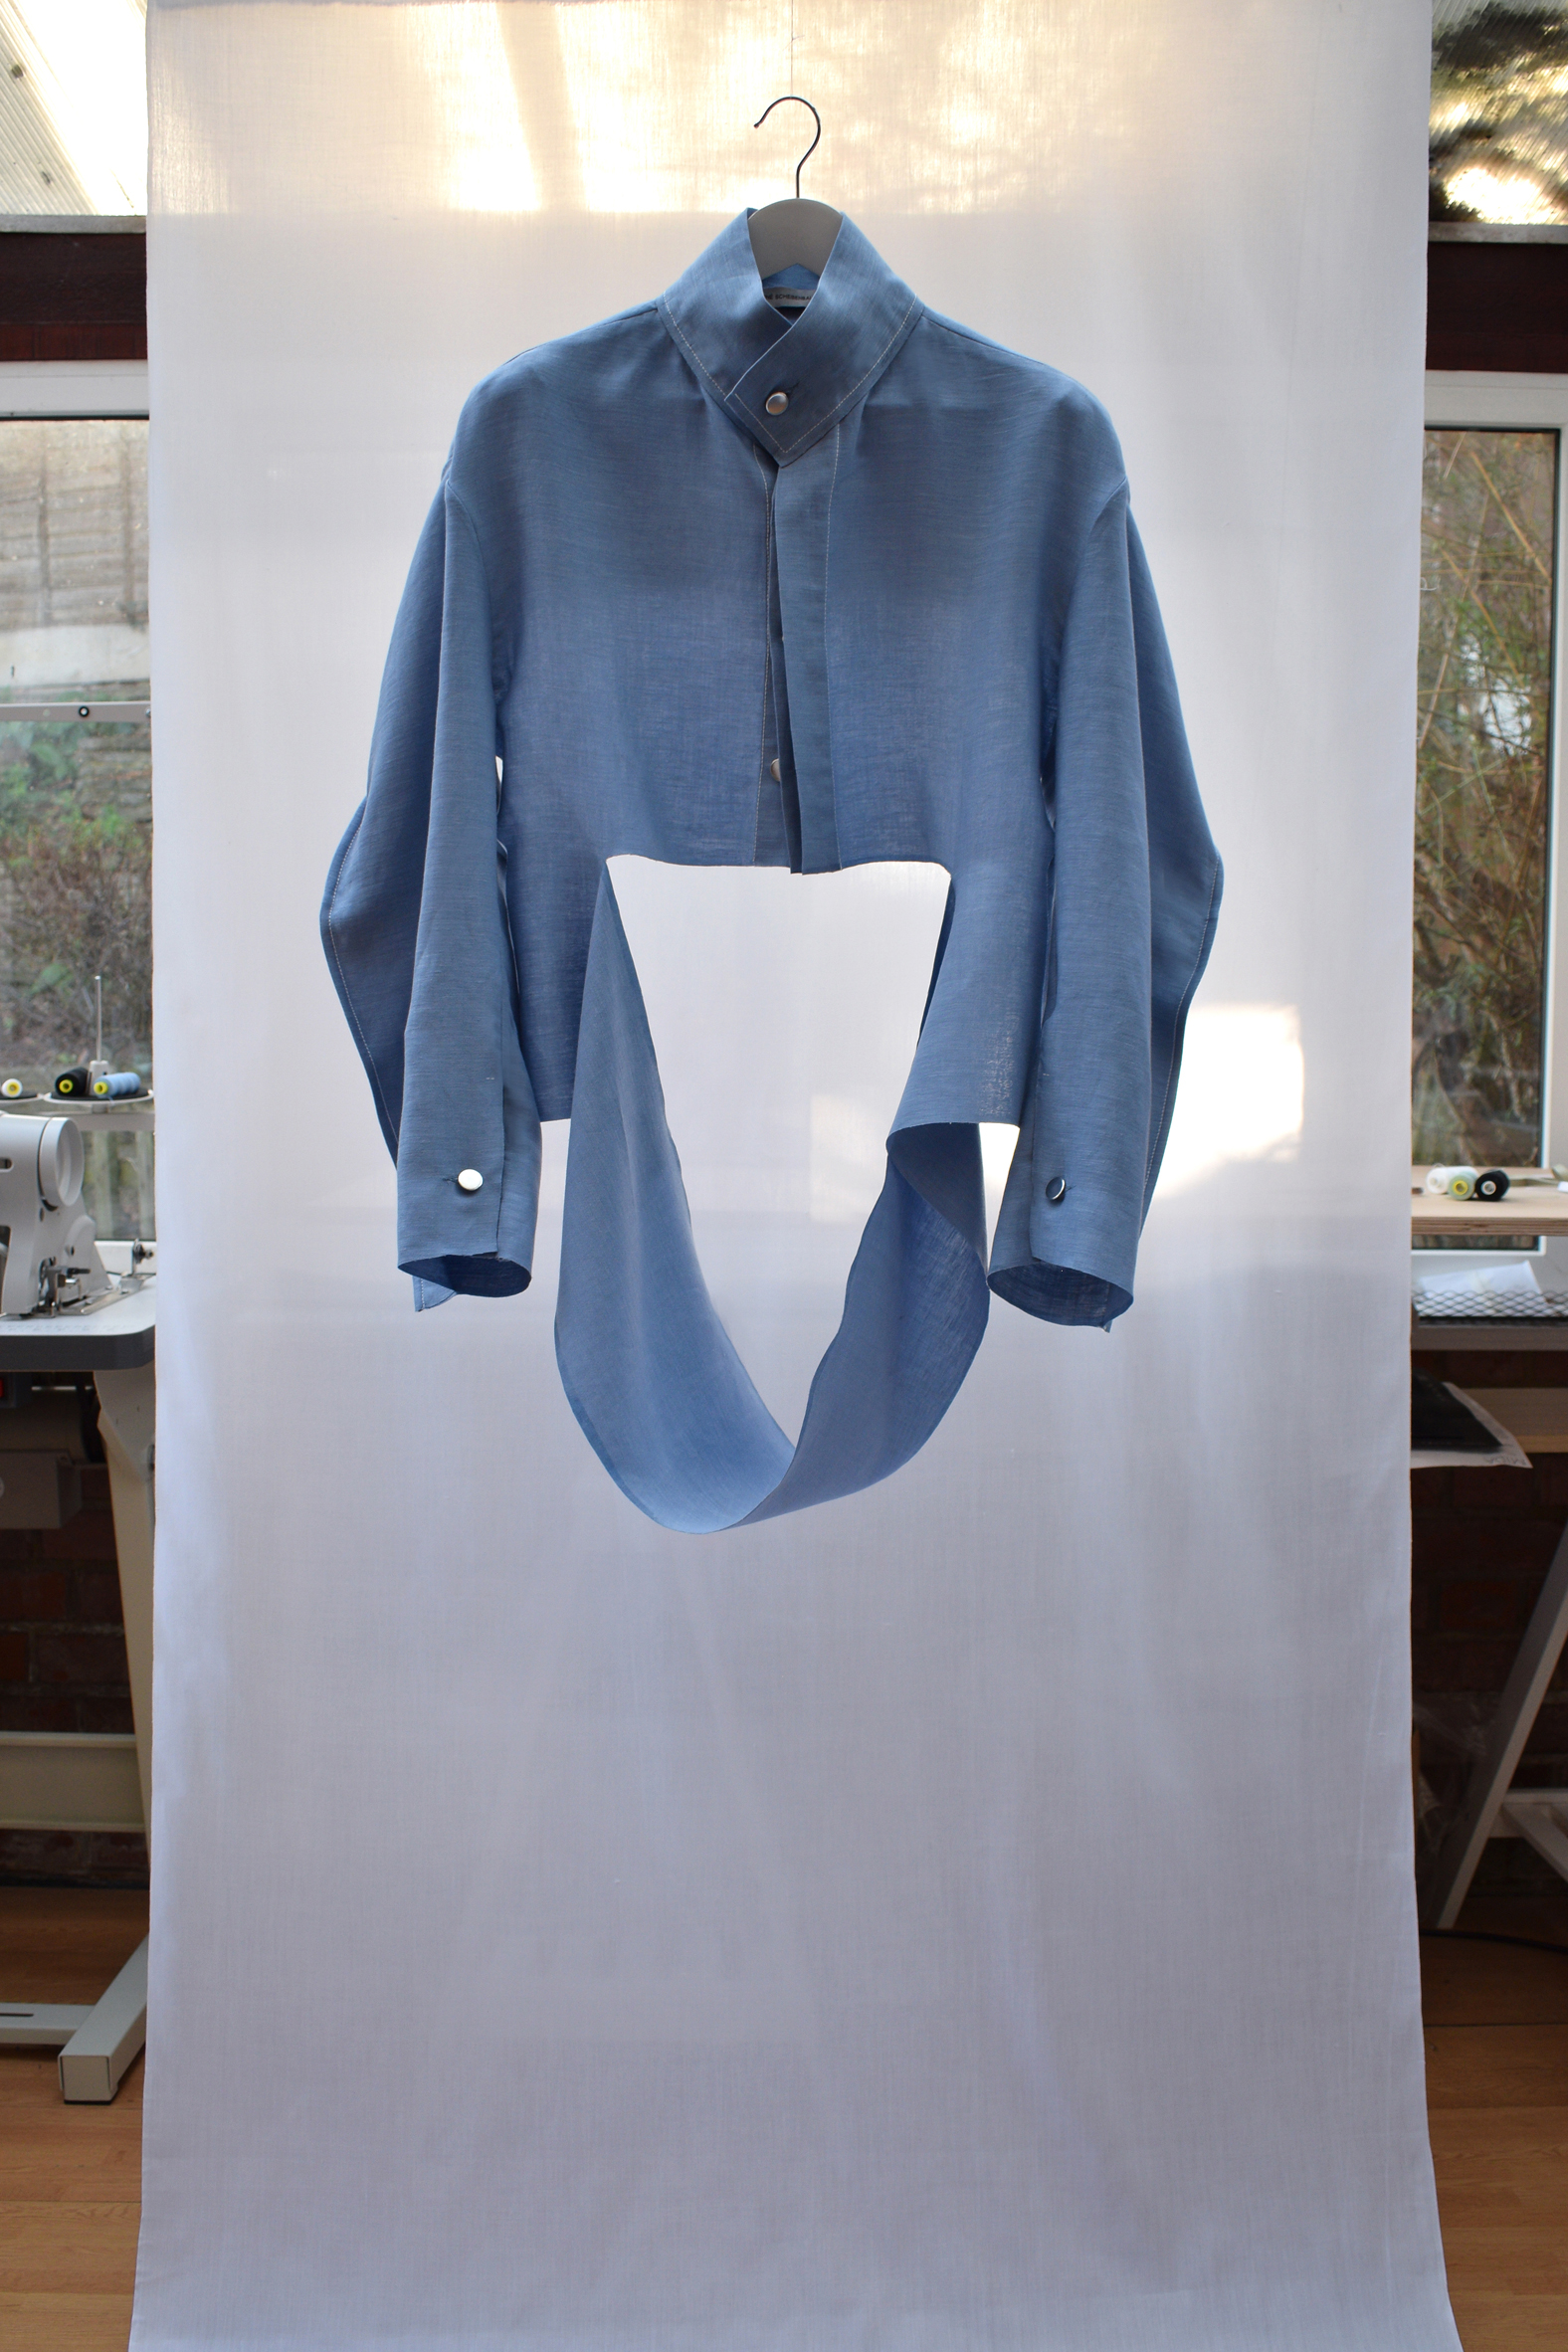 Skyblue Möbius Jacket